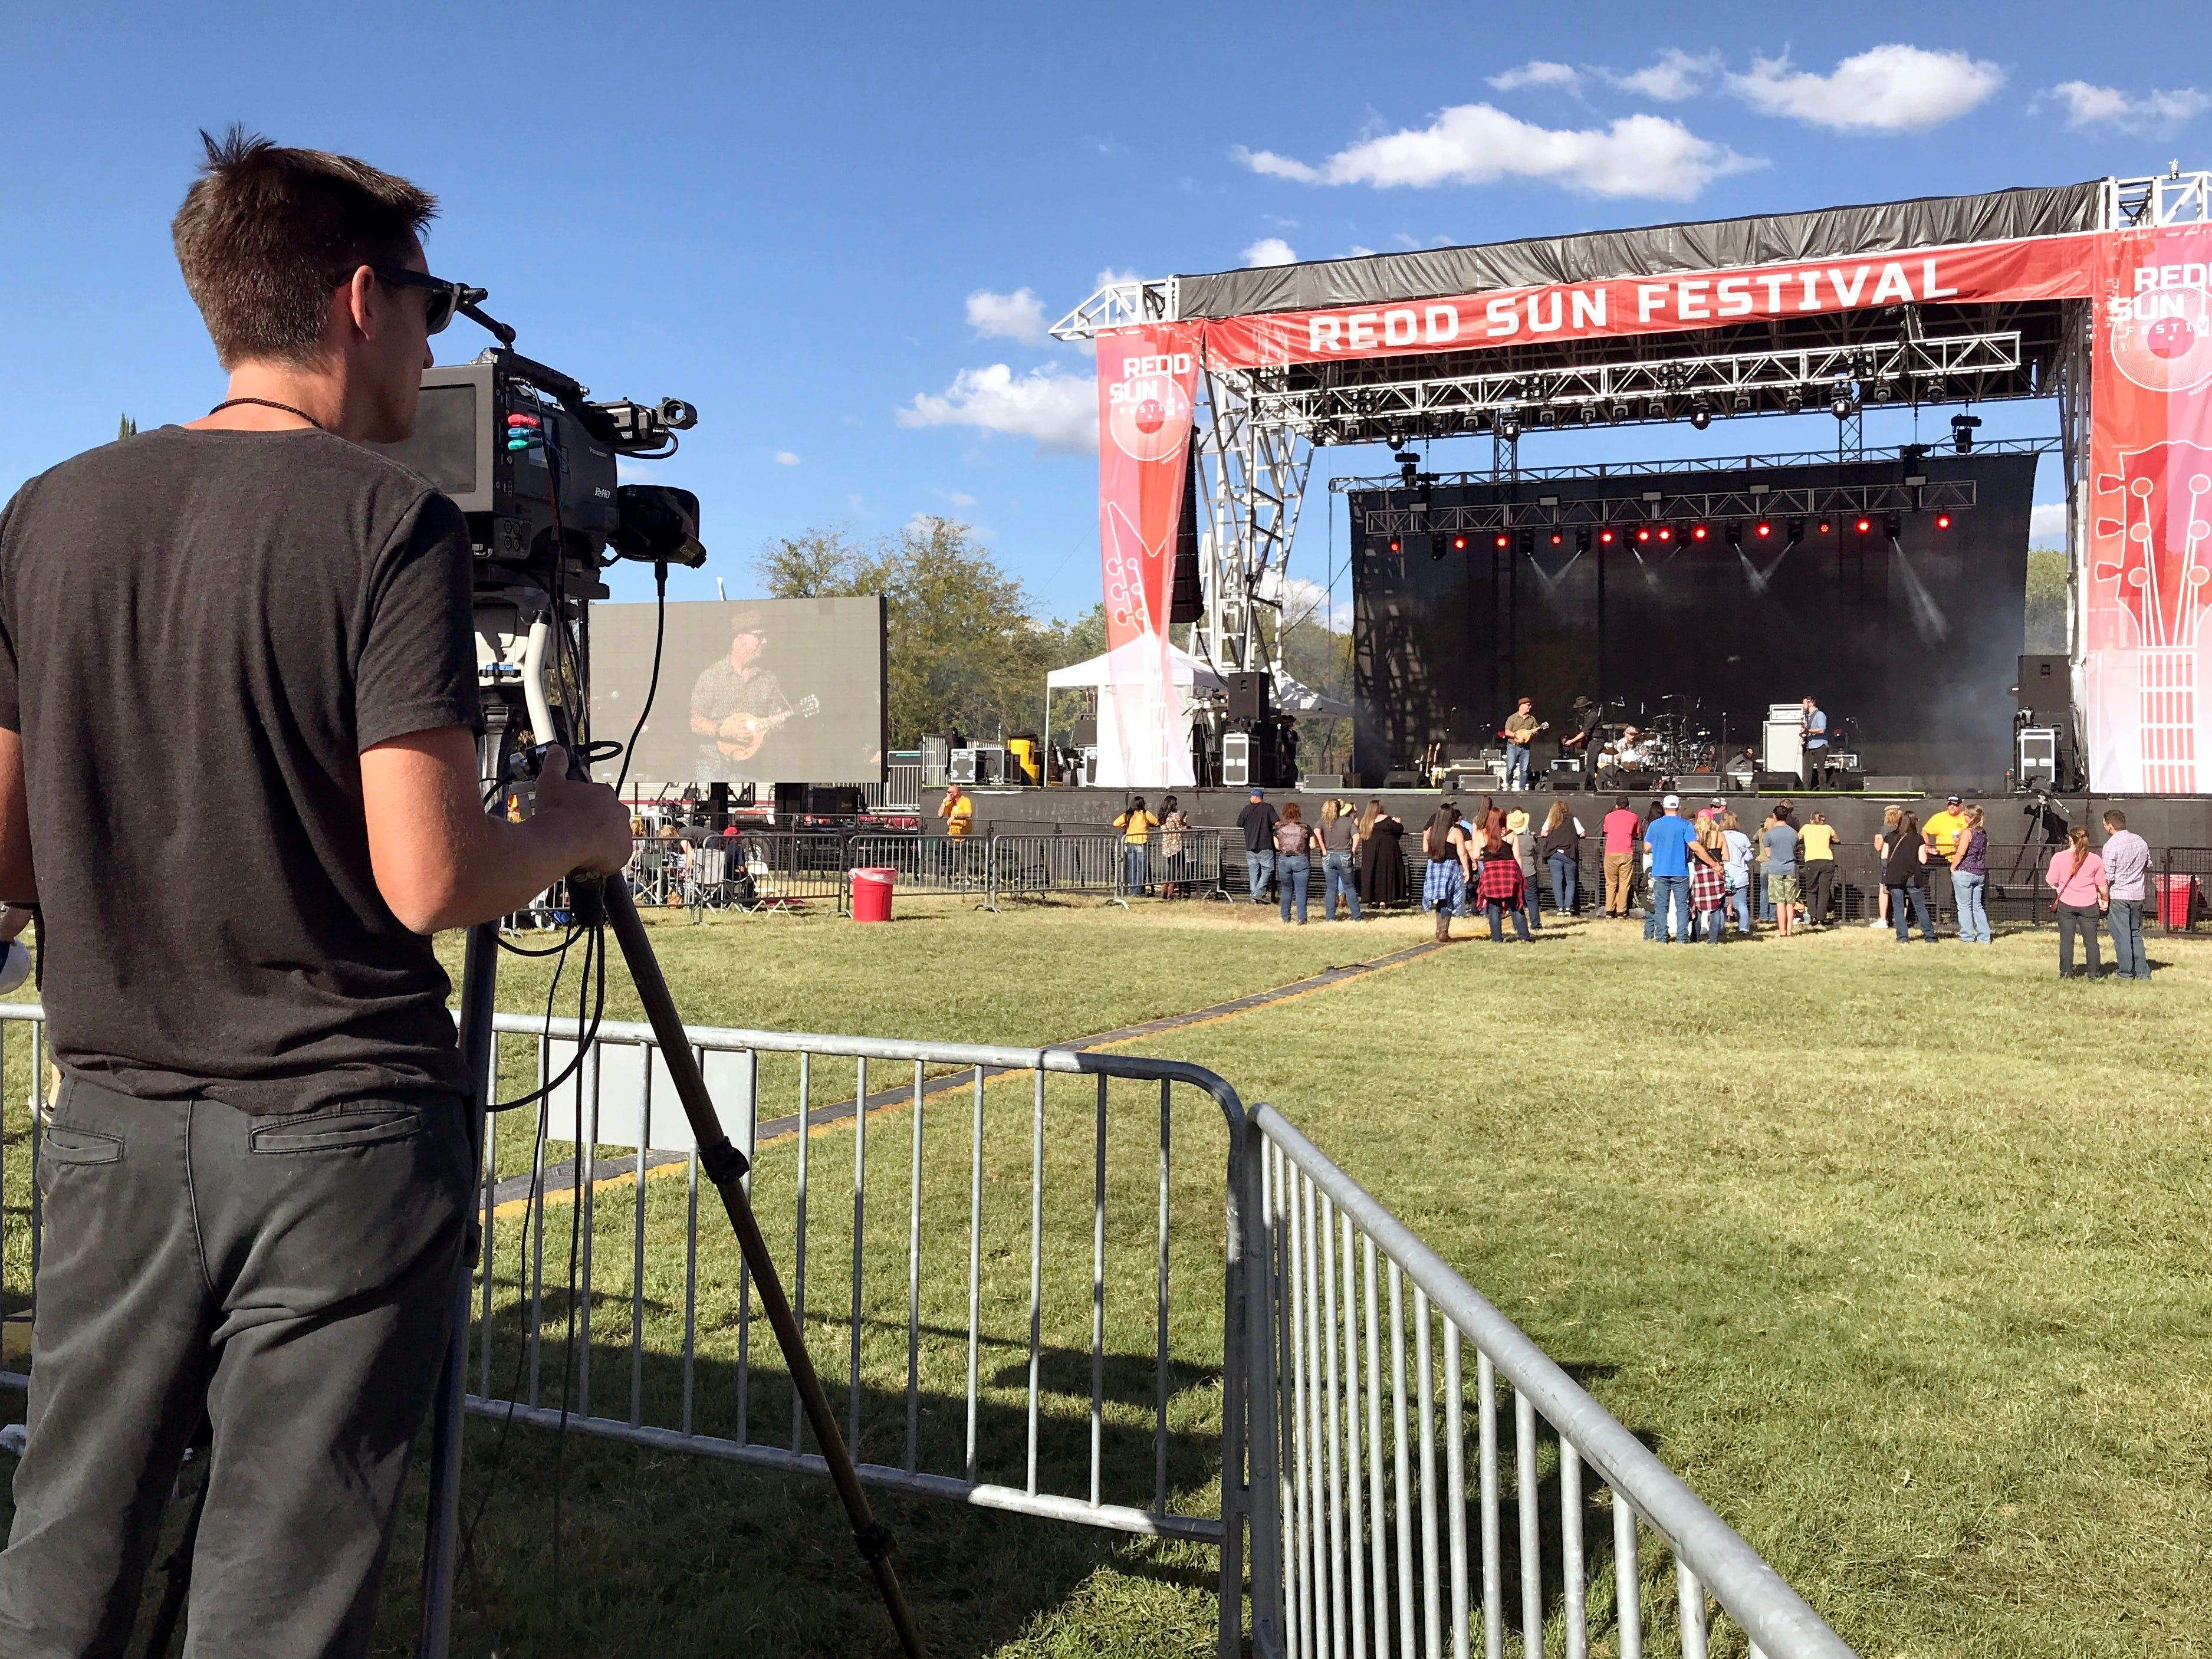 A cameraman films David Luning and his band Sunday afternoon during the Redd Sun Festival.